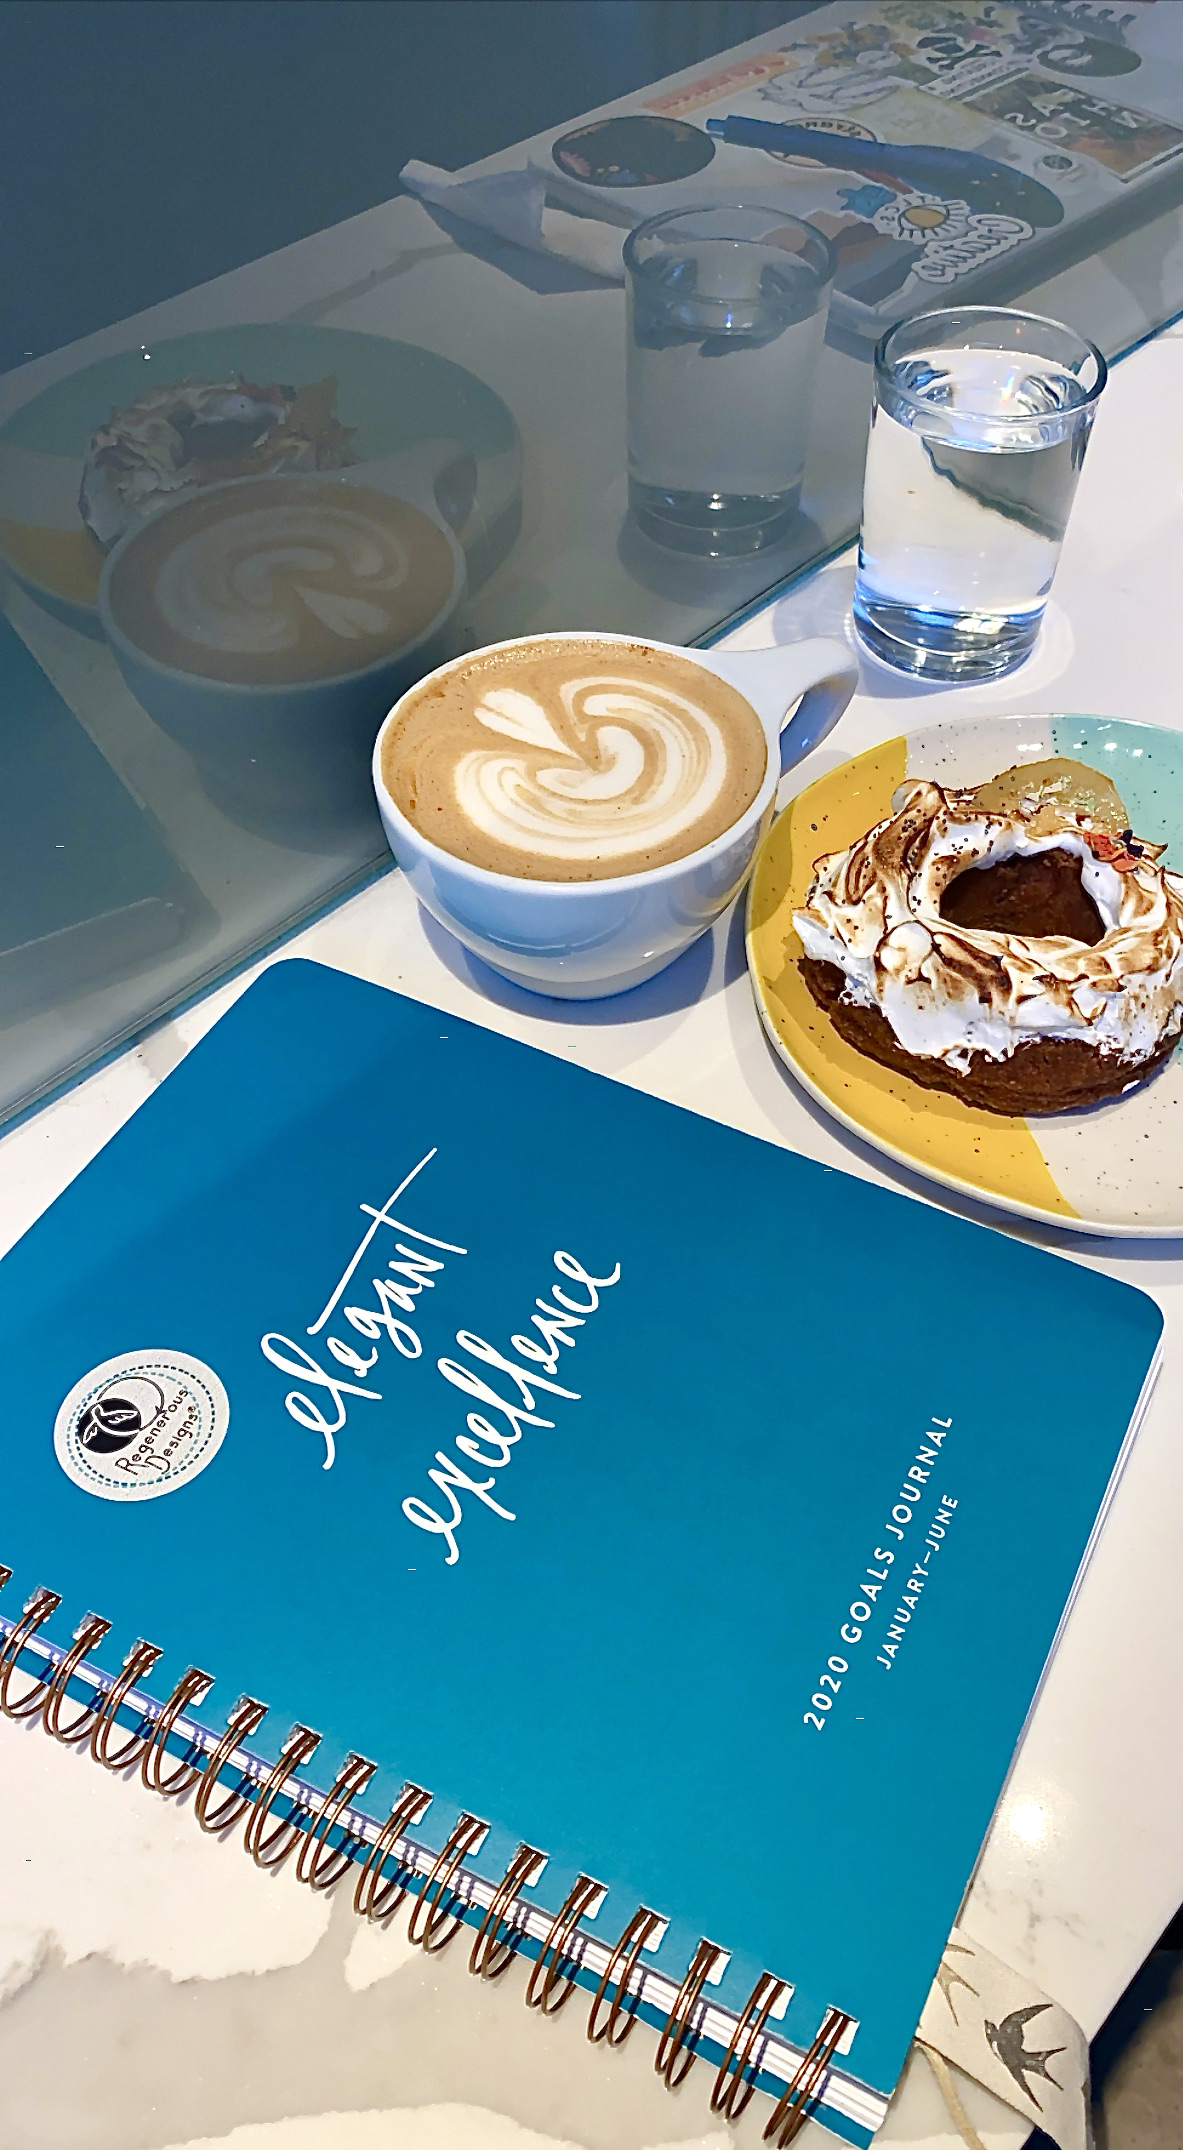 Elegant Excellence Goals Journal with a yummy coffee and donut from Onyx Coffee Lab